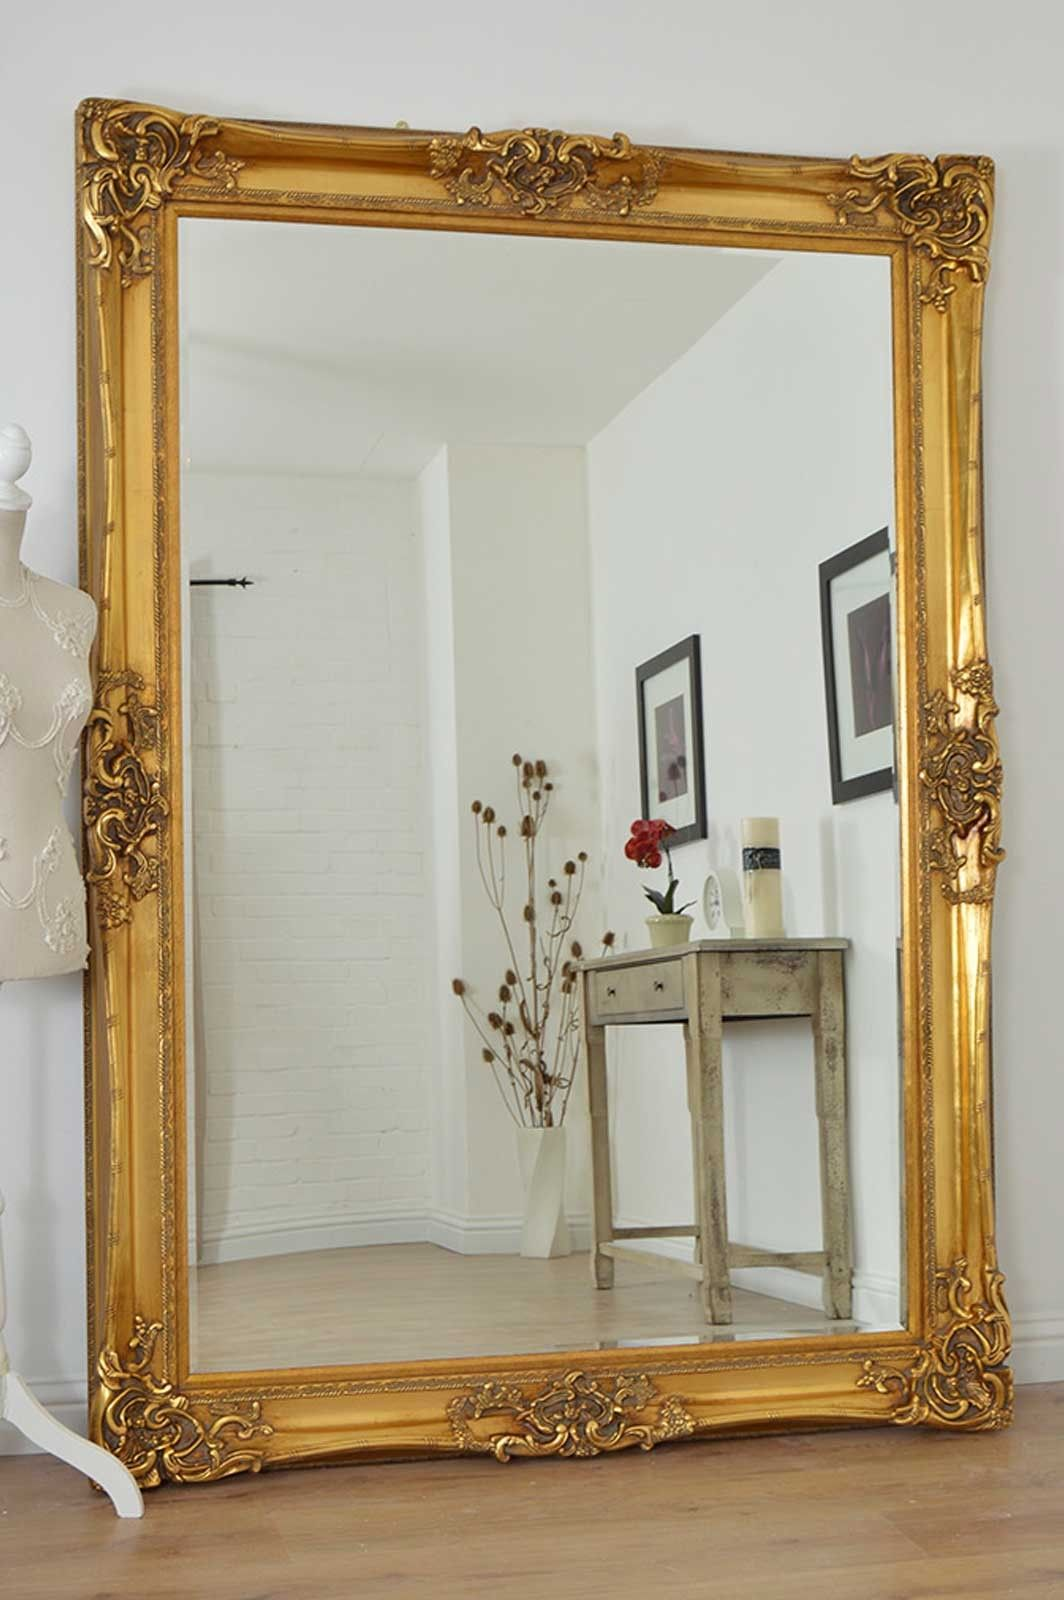 Large gold very ornate antique design wall mirror 7ft x for Big bedroom wall mirror